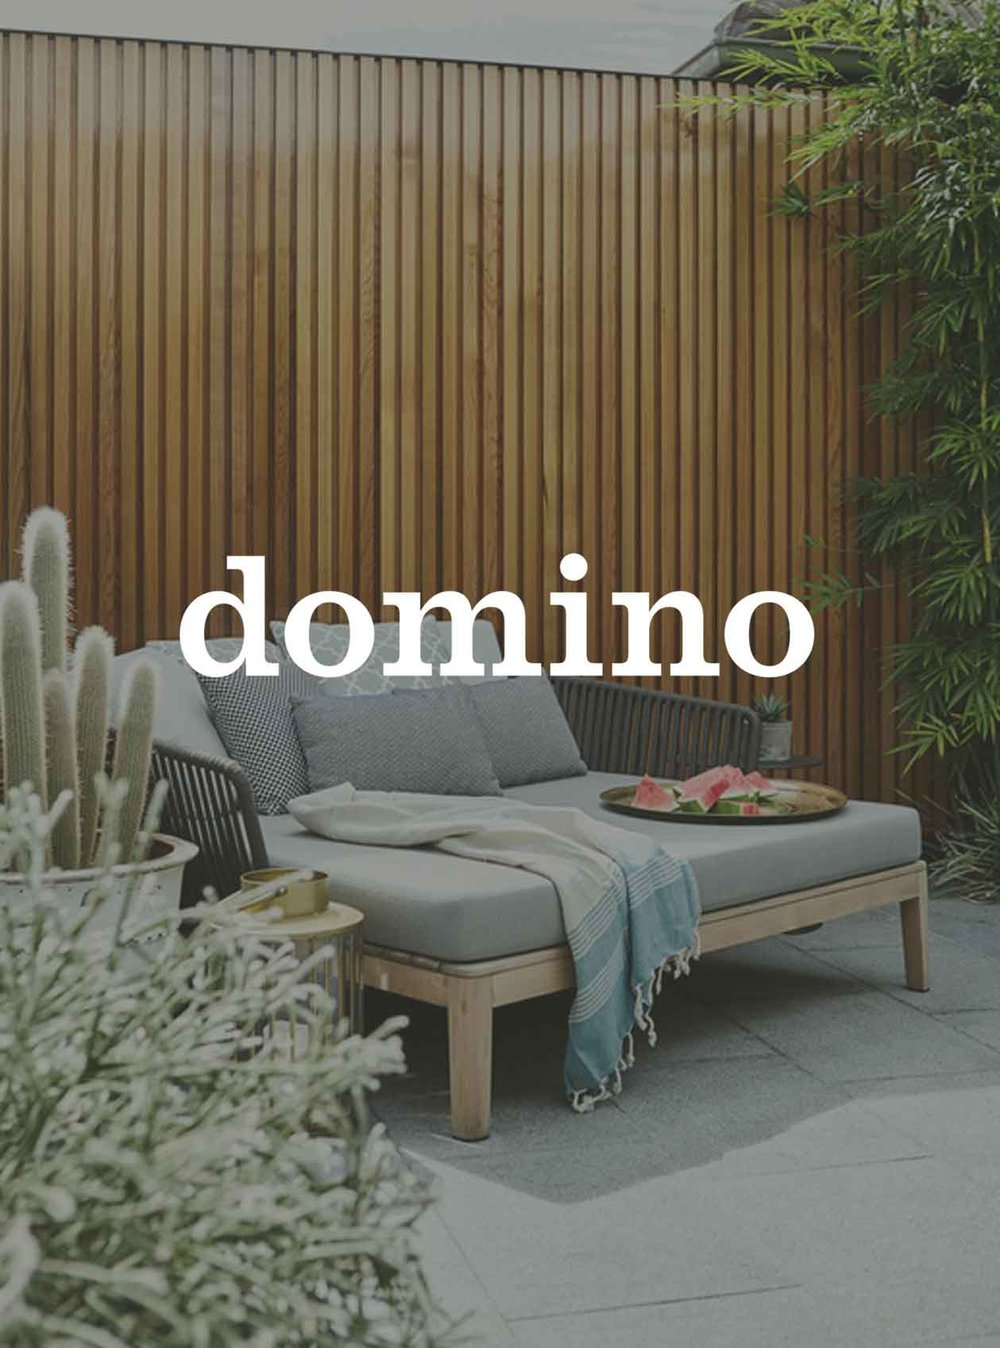 Domino - '8 Genius Ways To Create a Private Outdoor Space'Jul 30, 2017